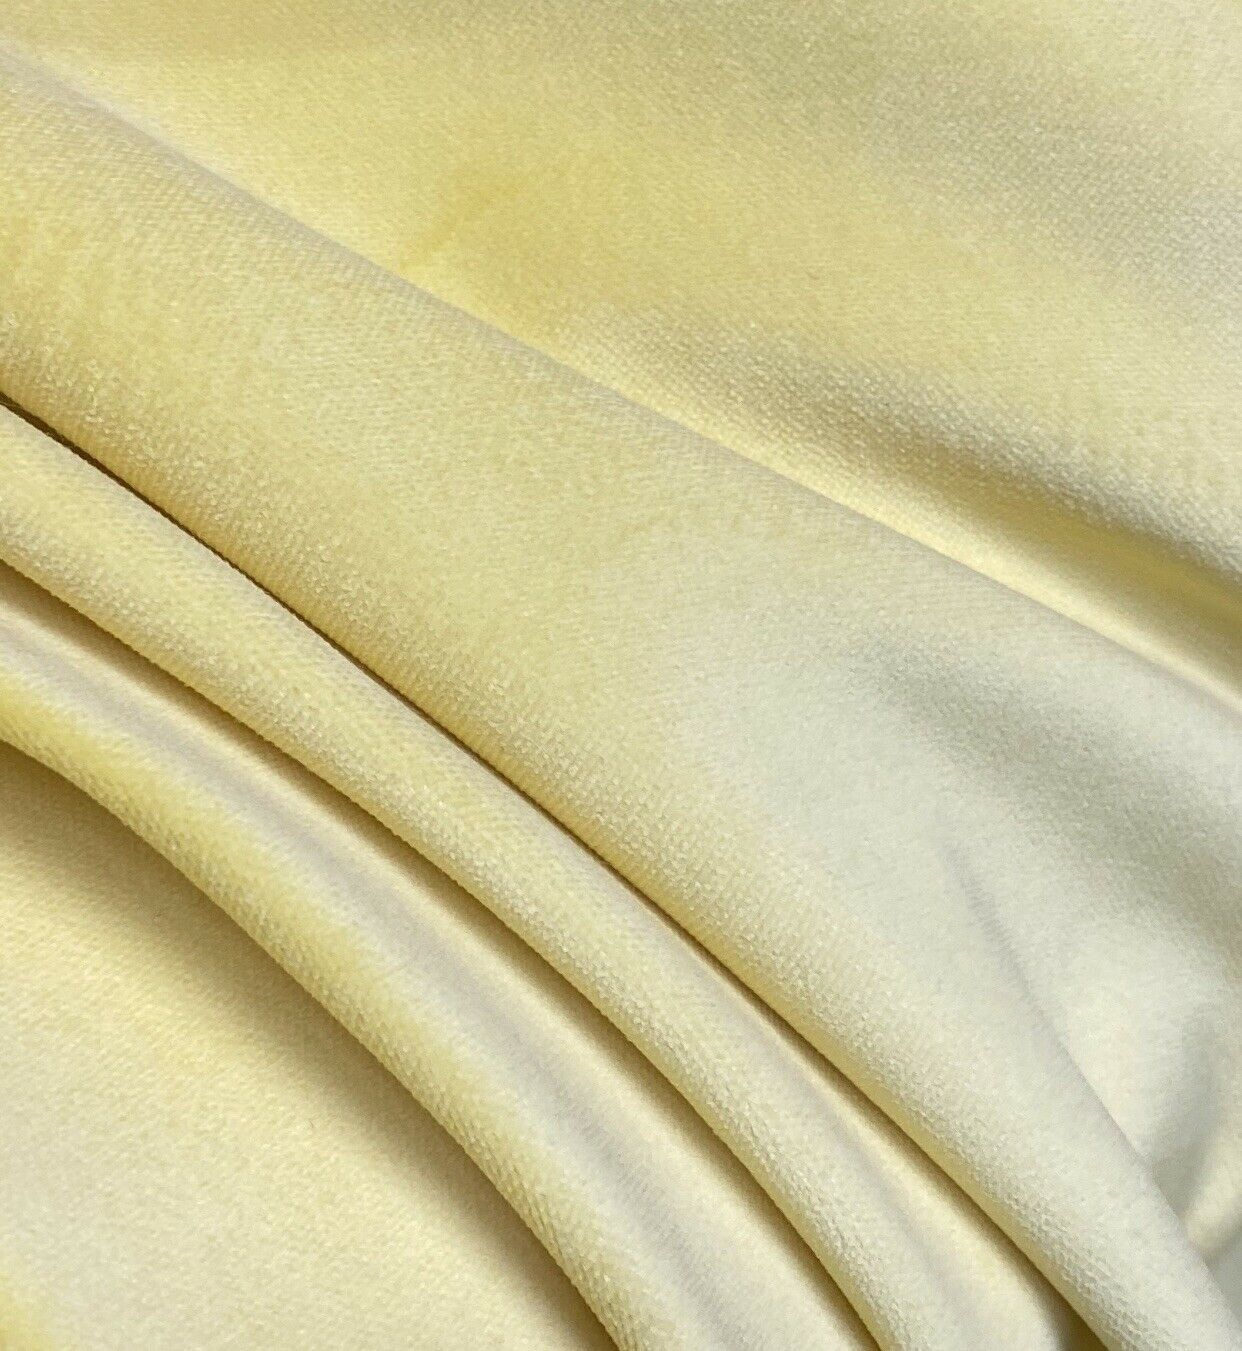 NEW! Prince Fabrielle - Designer Light Weight Cotton Velvet Upholstery Fabric - Soft- Light Yellow BTY